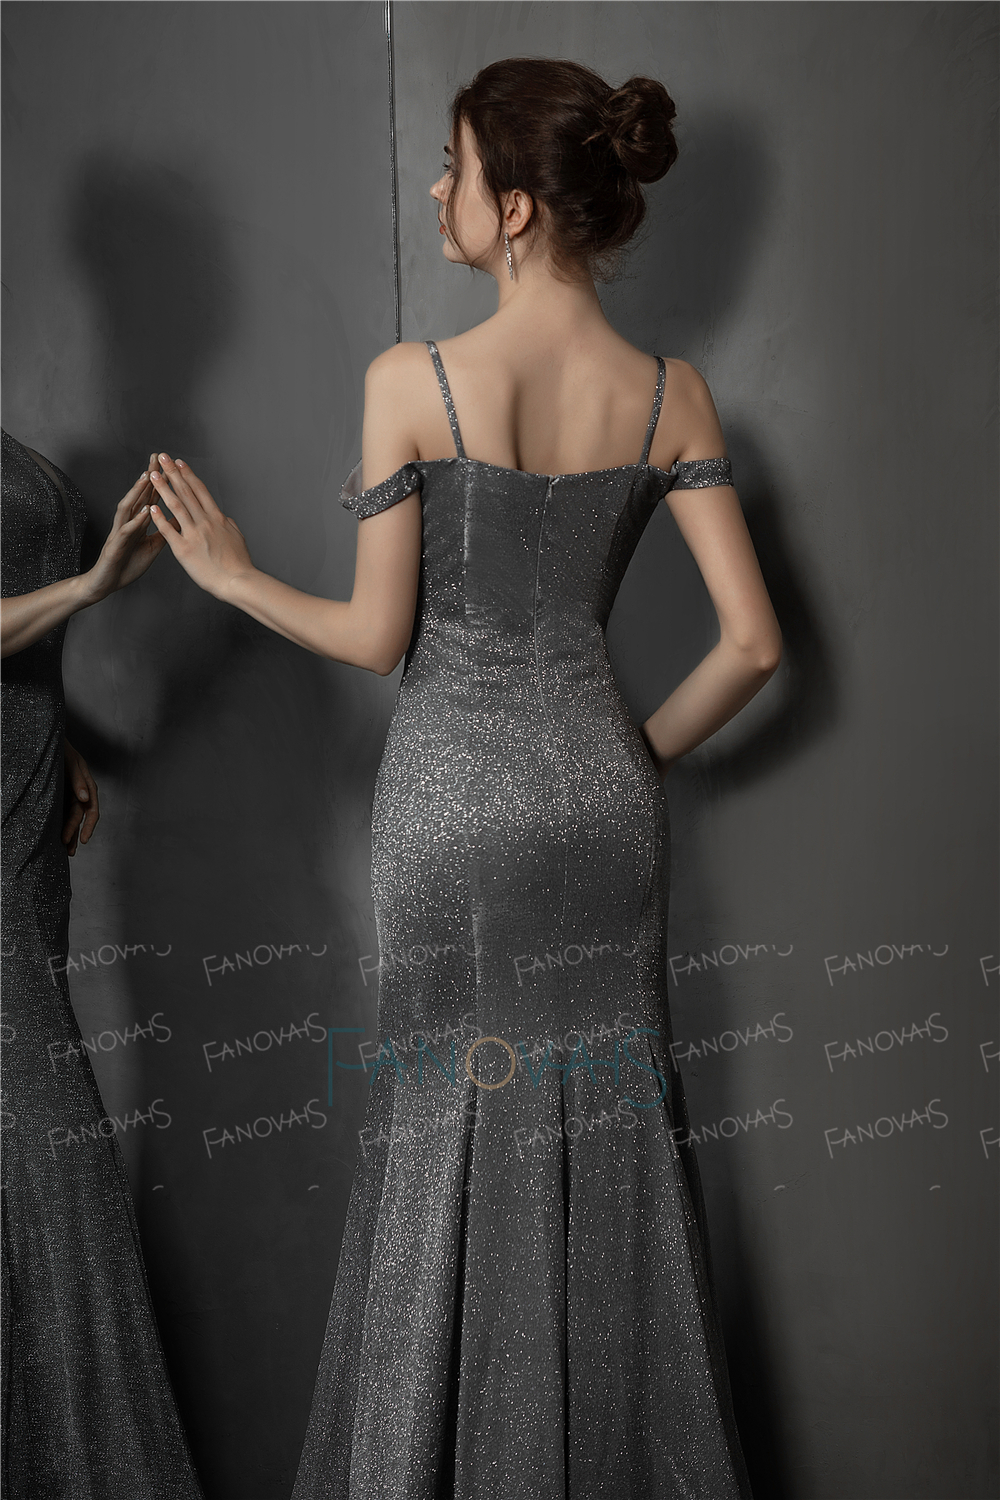 Shiny Grey Evening Dress 2019 Off the Shoulder Mermaid Evening Gown Glitter Formal Prom Party Gown Robe de Soiree NE75 in Evening Dresses from Weddings Events